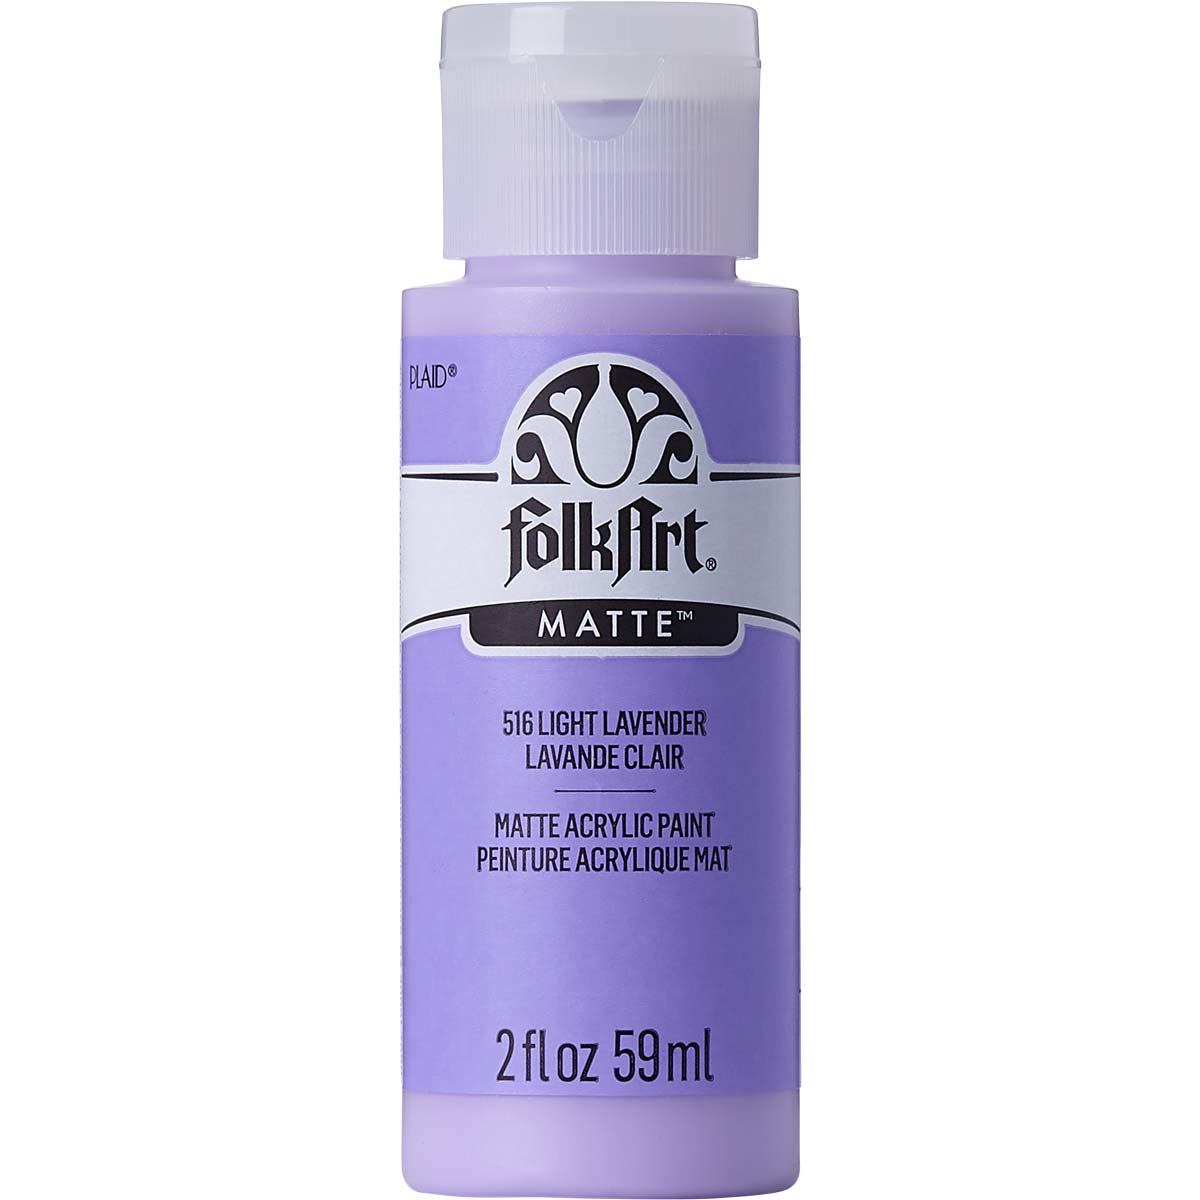 FolkArt ® Acrylic Colors - Light Lavender, 2 oz. - 516